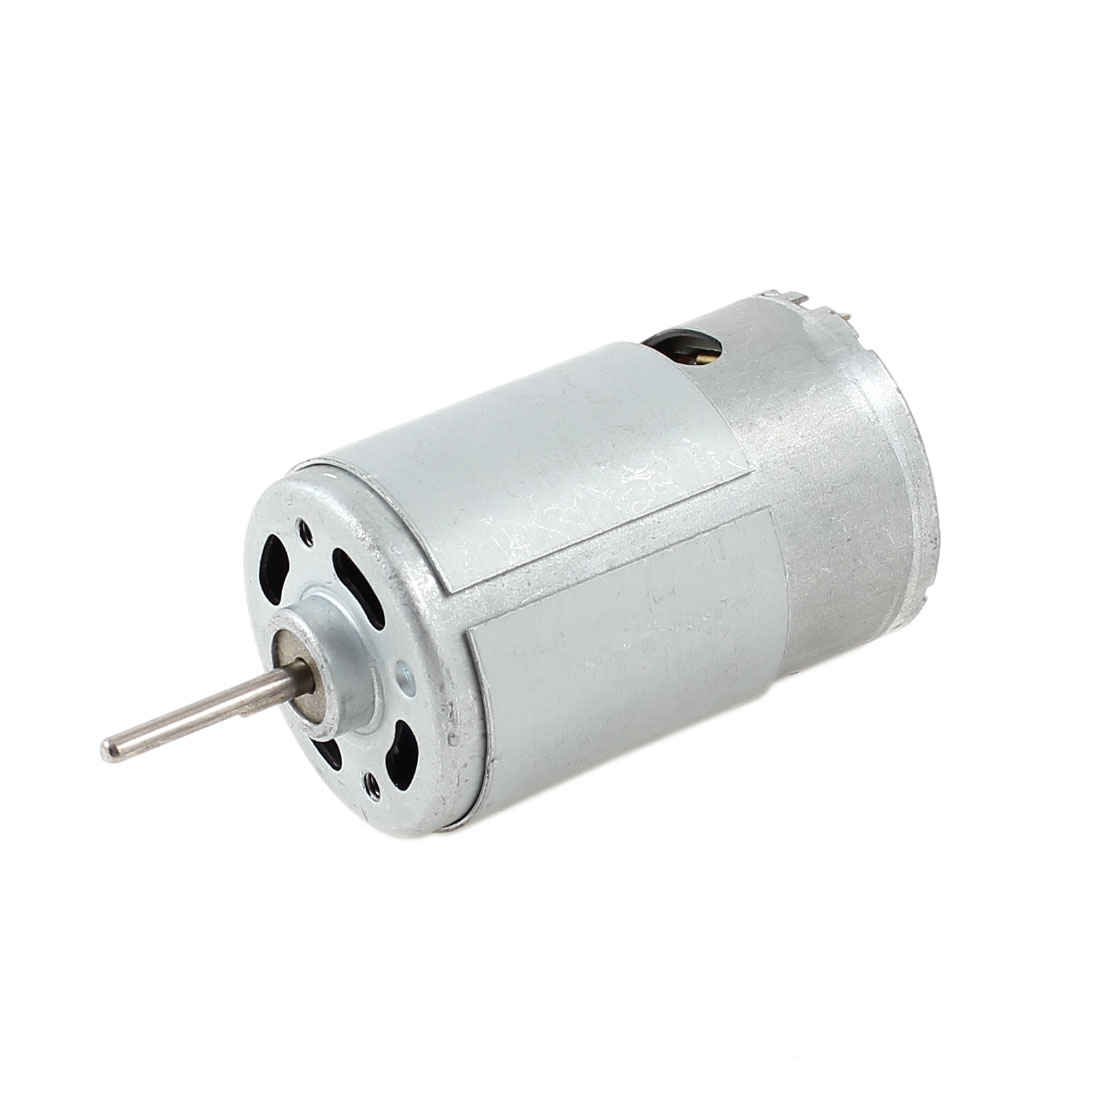 3-9V 6300-21000 RPM Speed Mini Magnetic Cylinder Electric DC Motor for DIY Toy